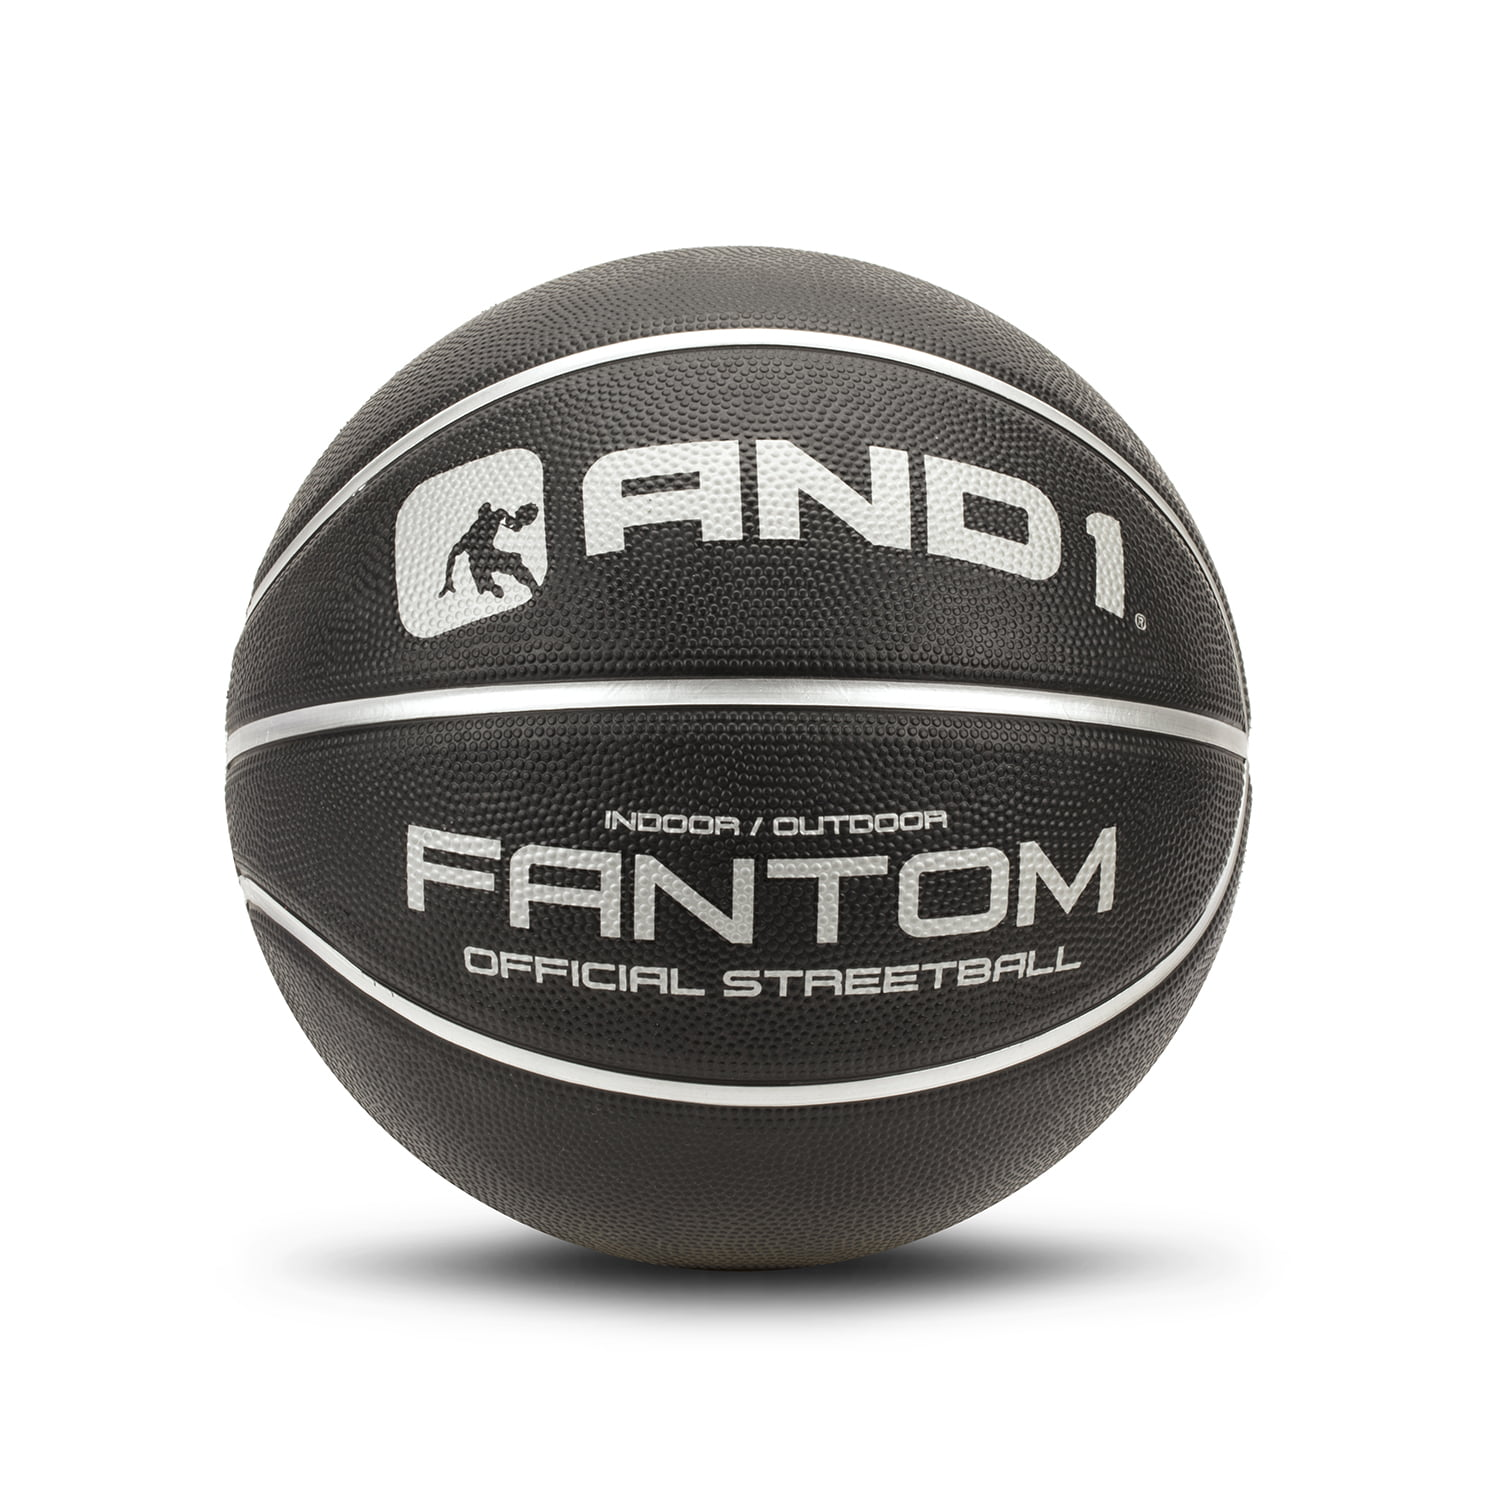 "And1 Fantom Street Basketball, Official Size 7 (29.5"") by Lifeworks Technology Group"